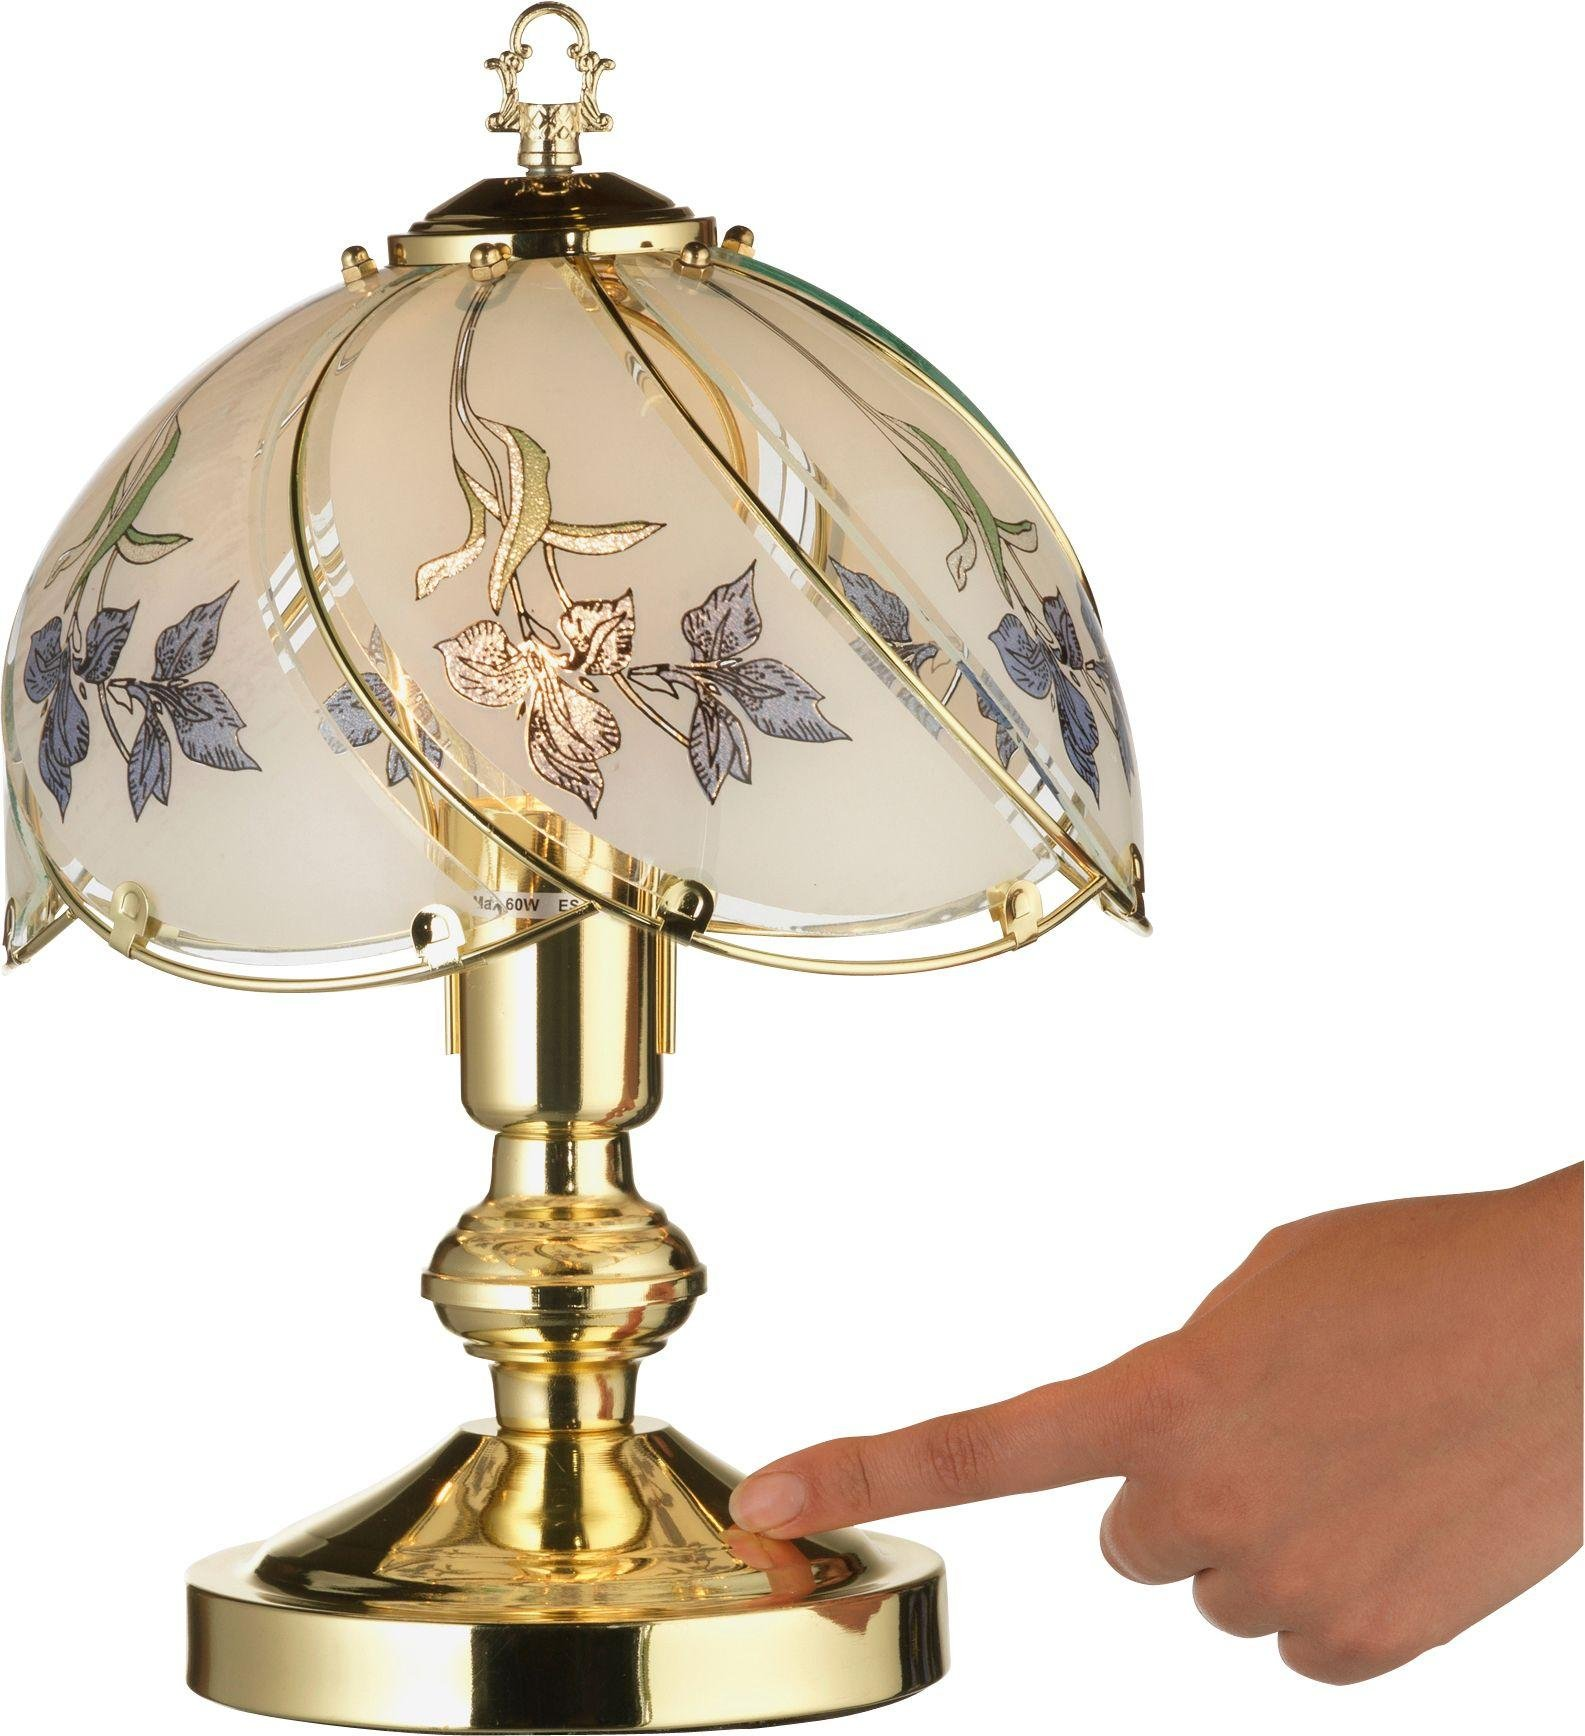 Add The Finishing Touch To Your Home With This Pretty Table Lamp With A  Dome Shade And A Decorative Iris Pattern.